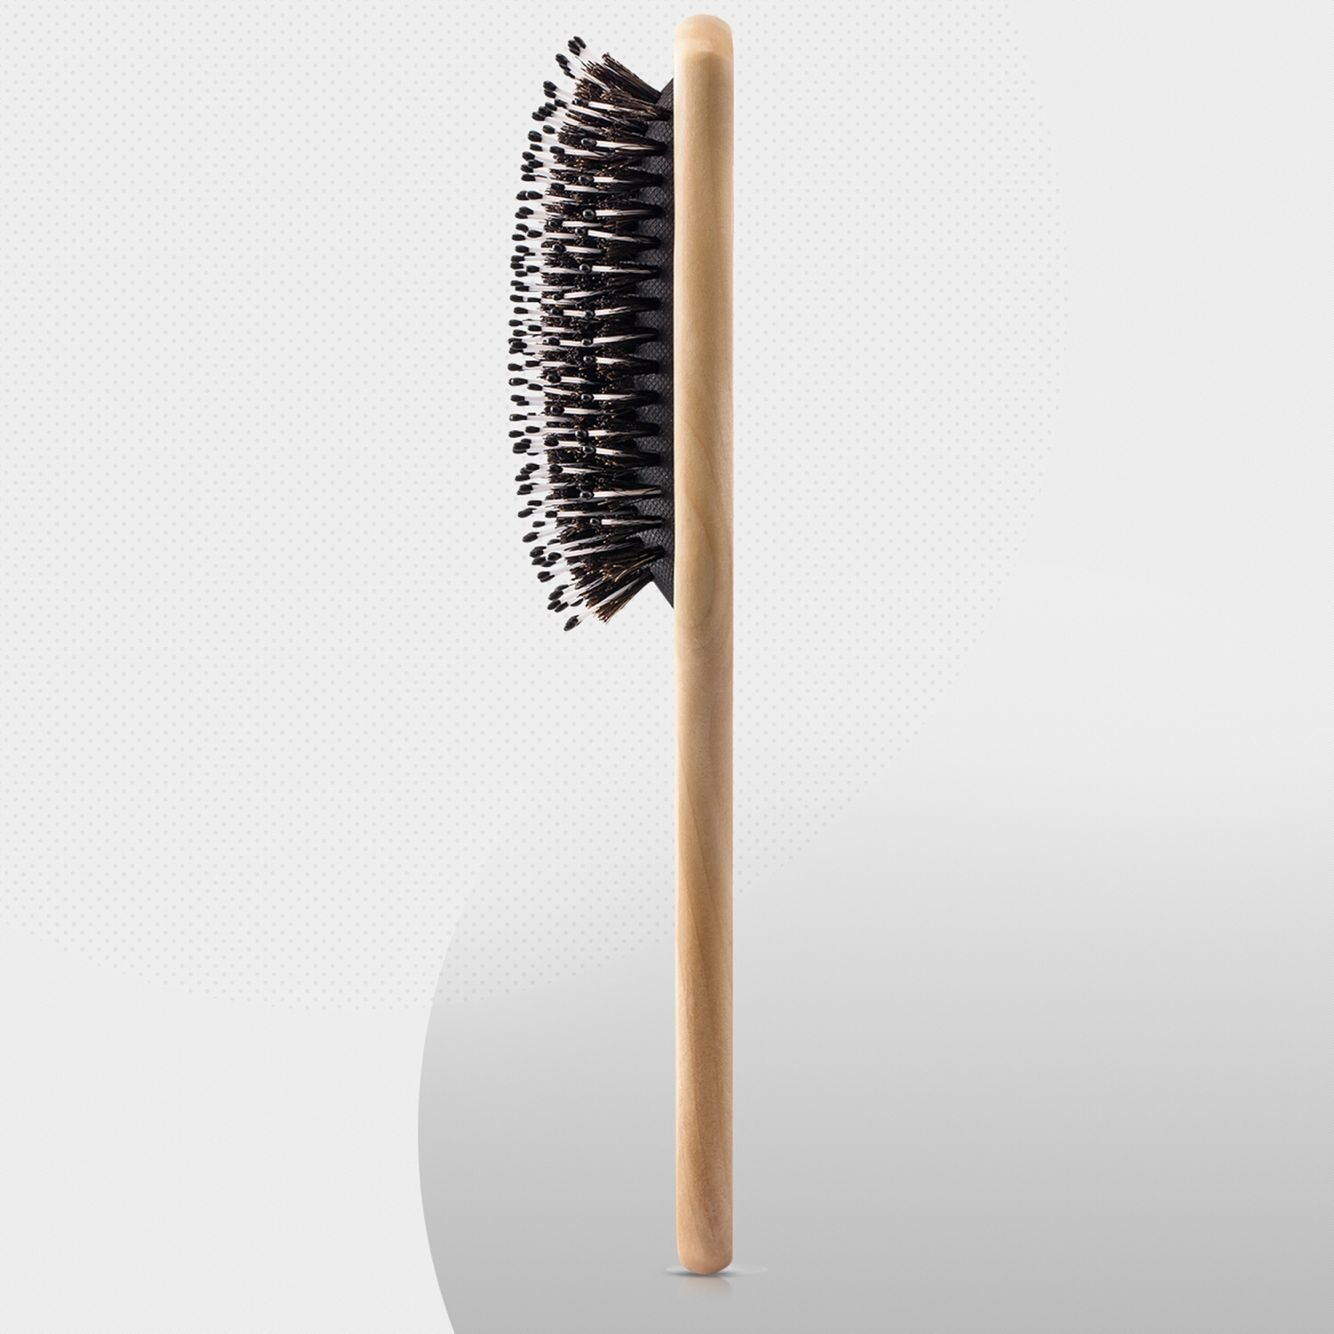 Hair Brush-Boar Bristle Hairbrush for Women Men Long Thick Fine Curly Wavy Dry or Wet Hair,Best Brush Set for Reducing Hair Breakage and Frizzy-Wooden Comb&Giftbox Inclued by Sosoon (Image #6)